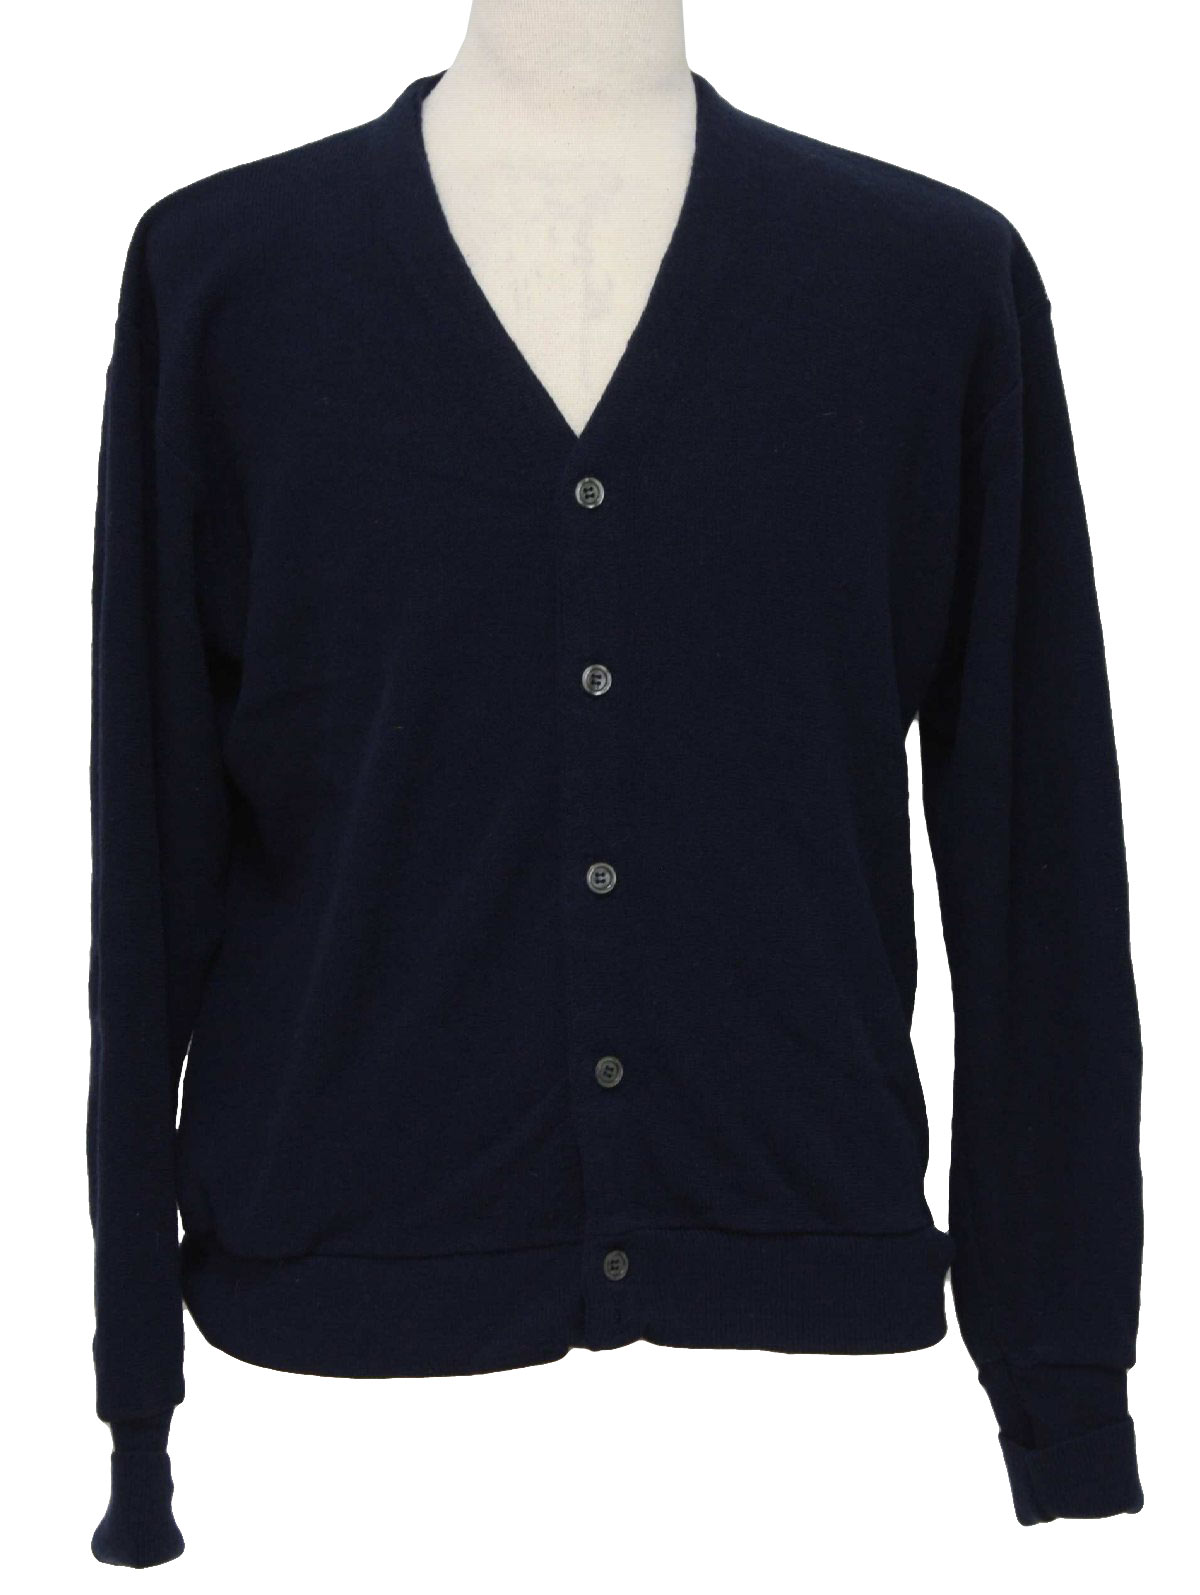 Find great deals on eBay for blue cardigans. Shop with confidence.